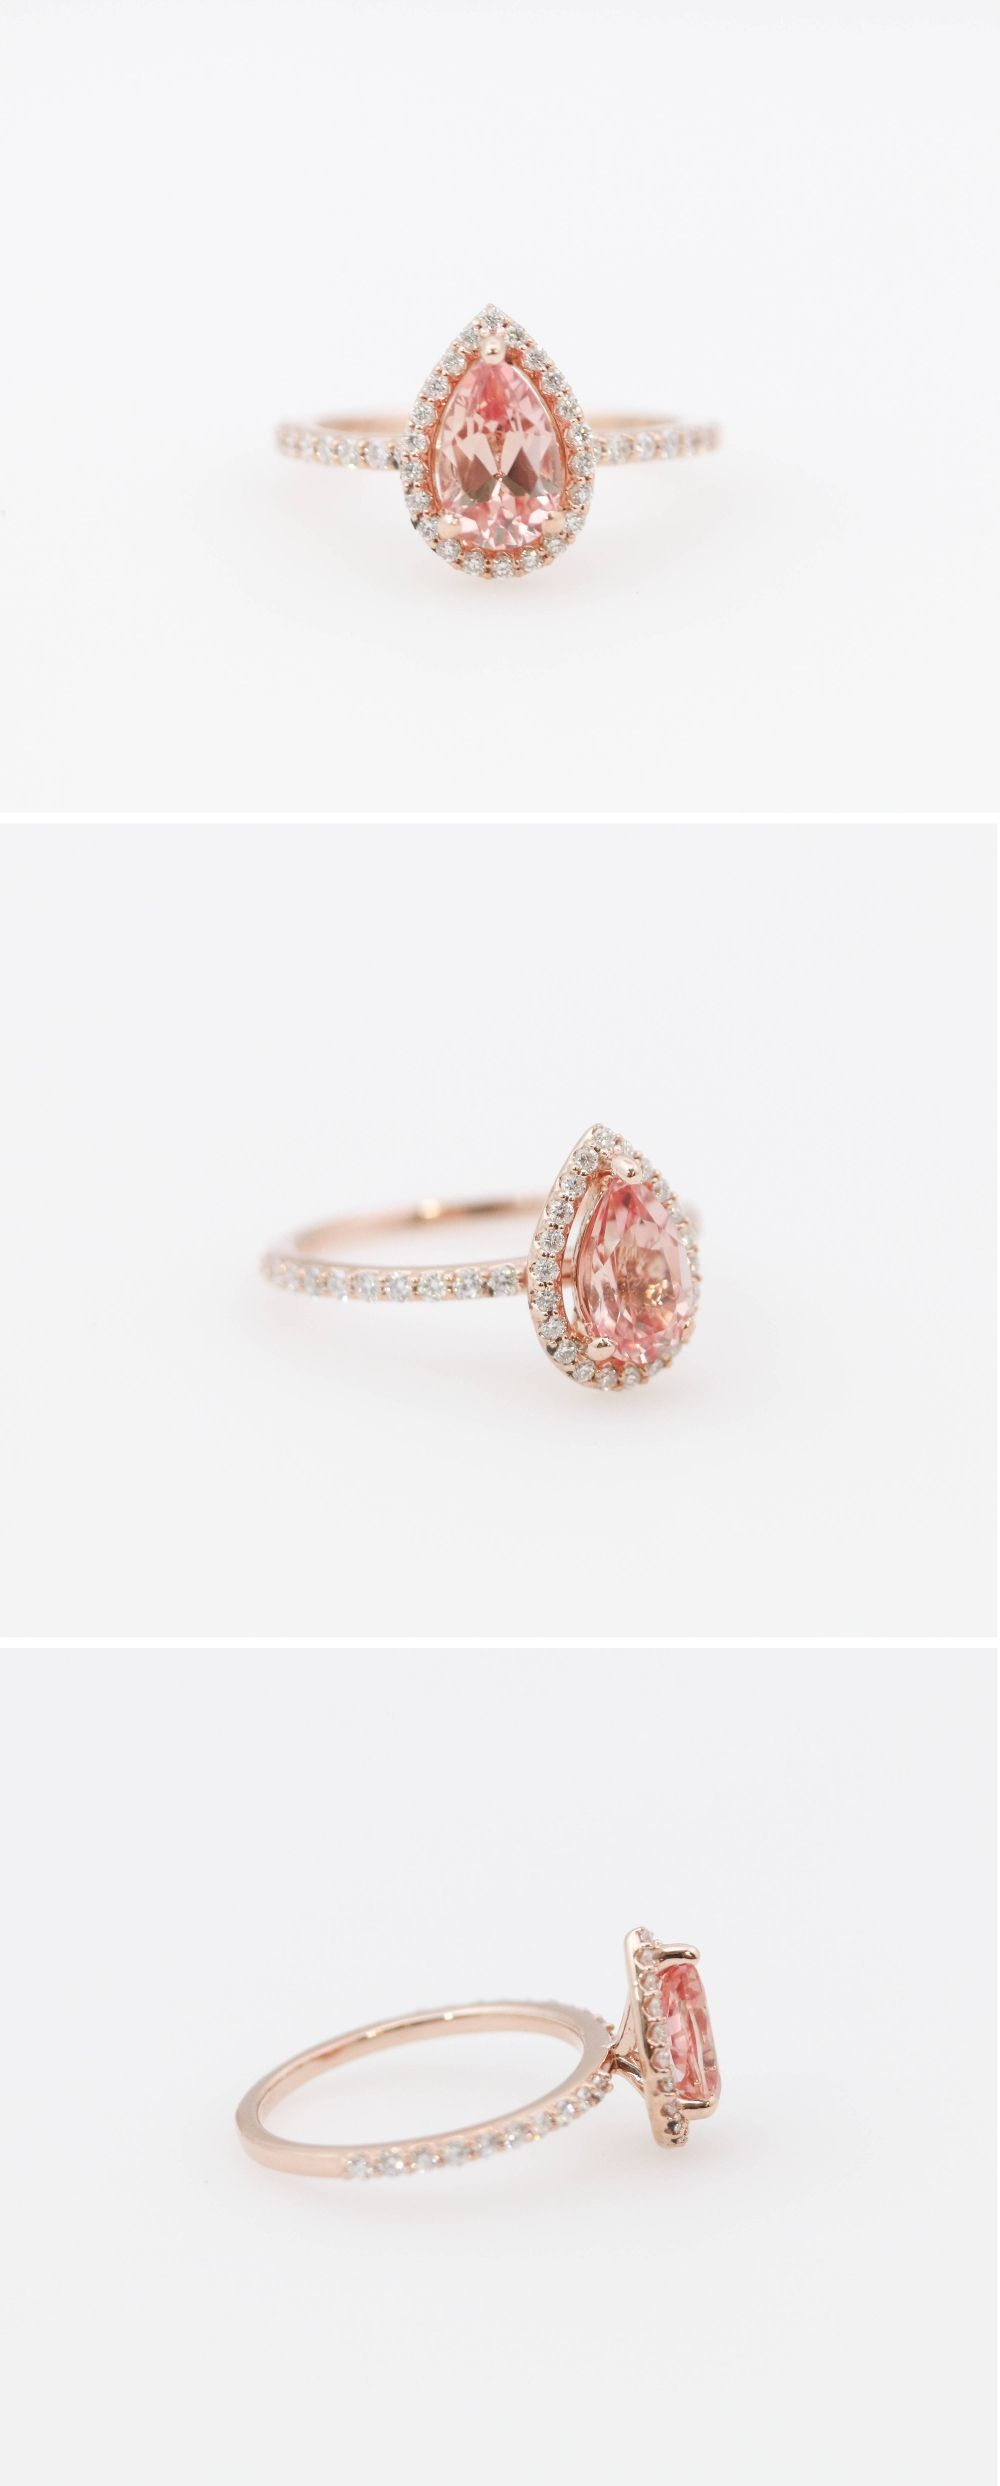 blush ultimate rose guide a rings ring split should blog the purchase engagement gold you band